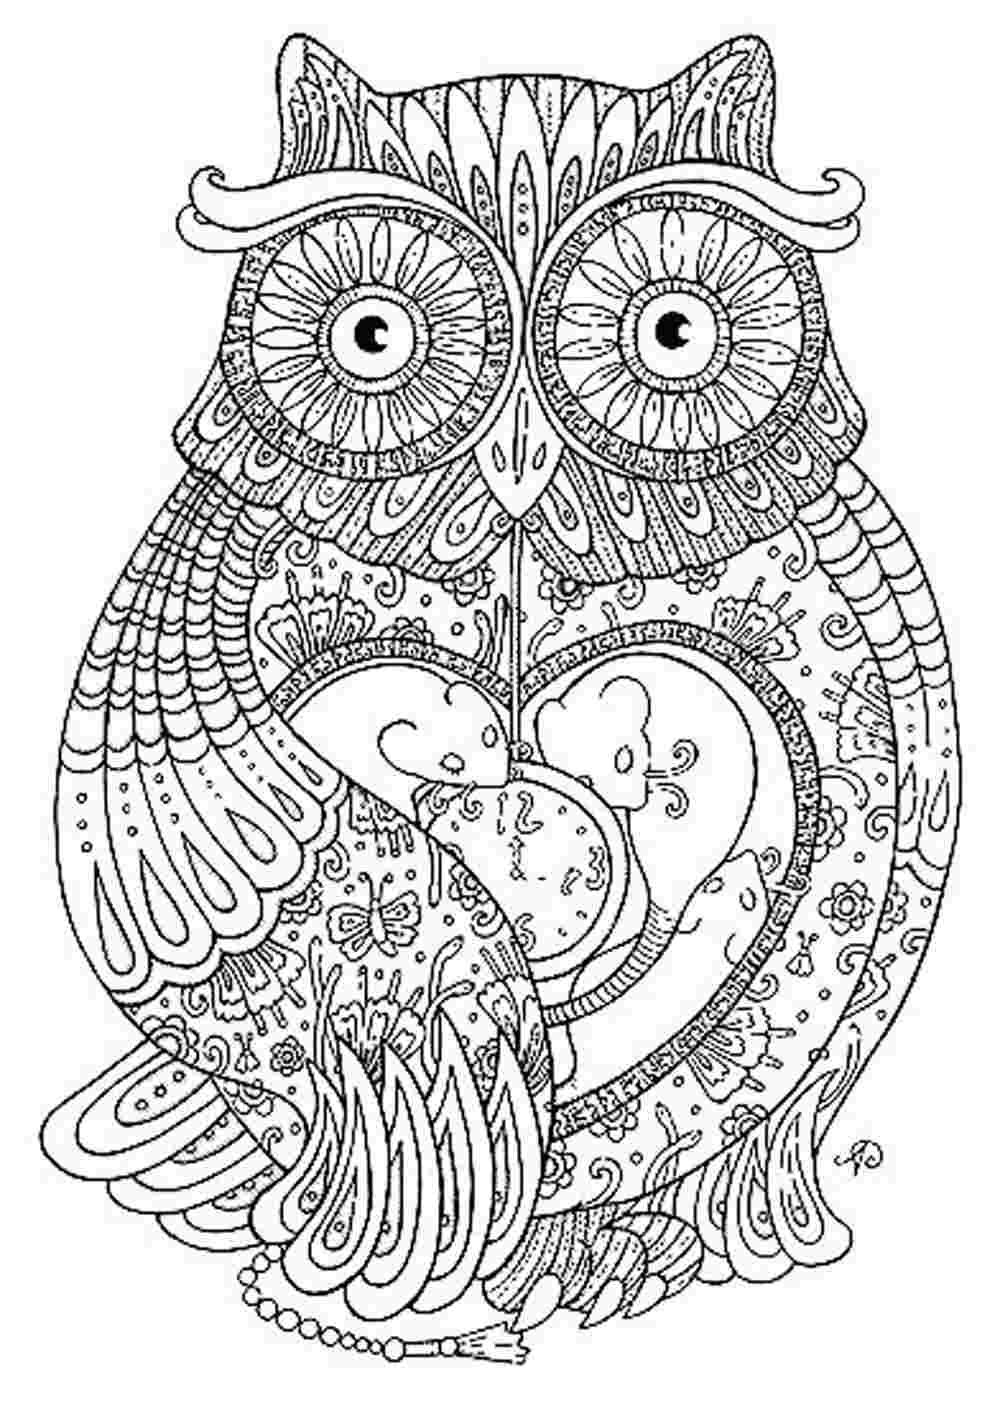 Mandala coloring pages easter - Free Adult Coloring Pages